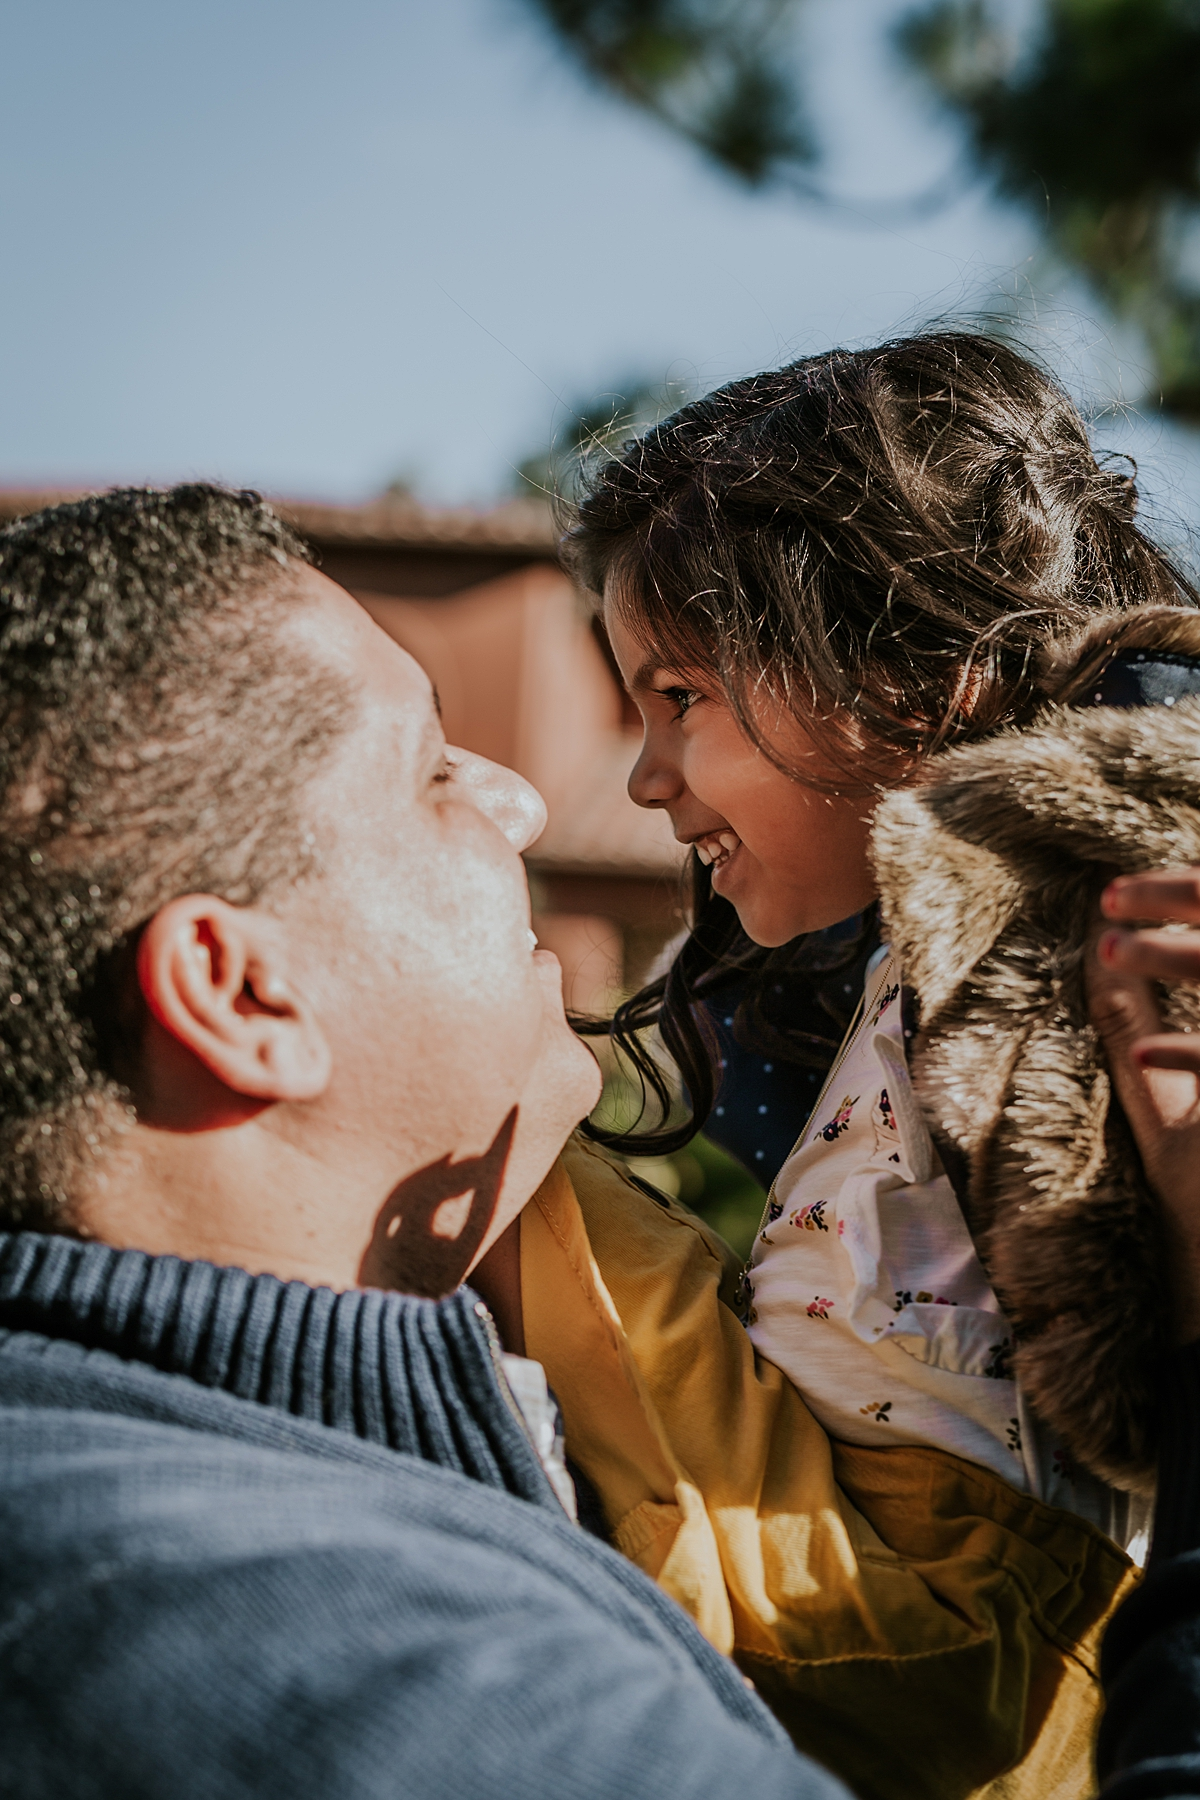 Orange County family photographer. Dad pl;aying with his sweet black haired daughter in the sunshine during family photo shoot at abandoned railway tracks in orange county